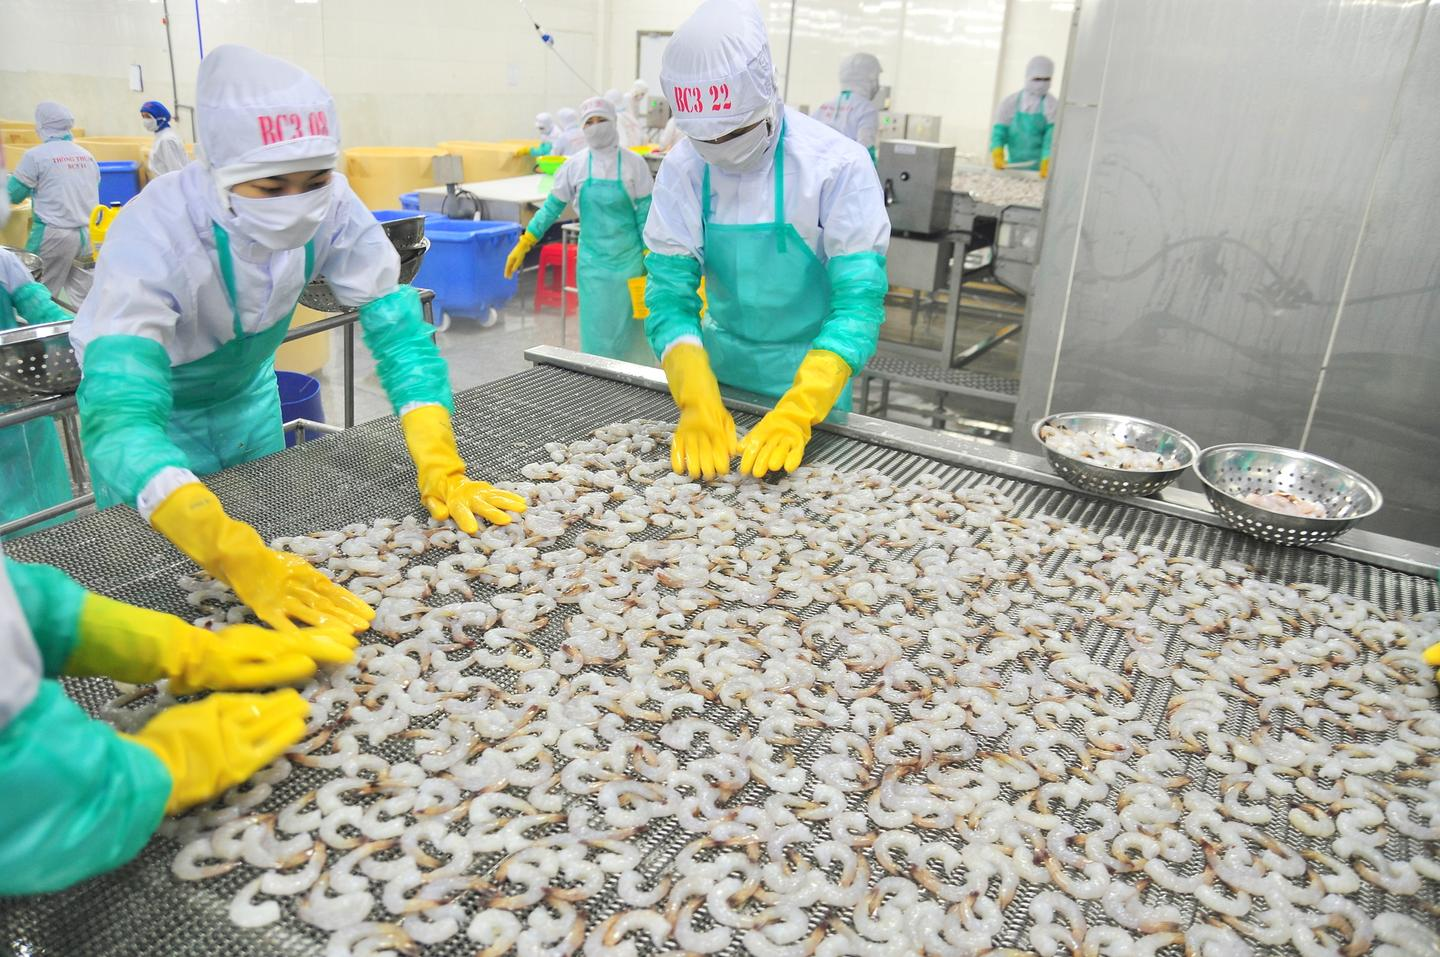 In the seafood industry, much of the protein left over after processing shrimp just goes to waste